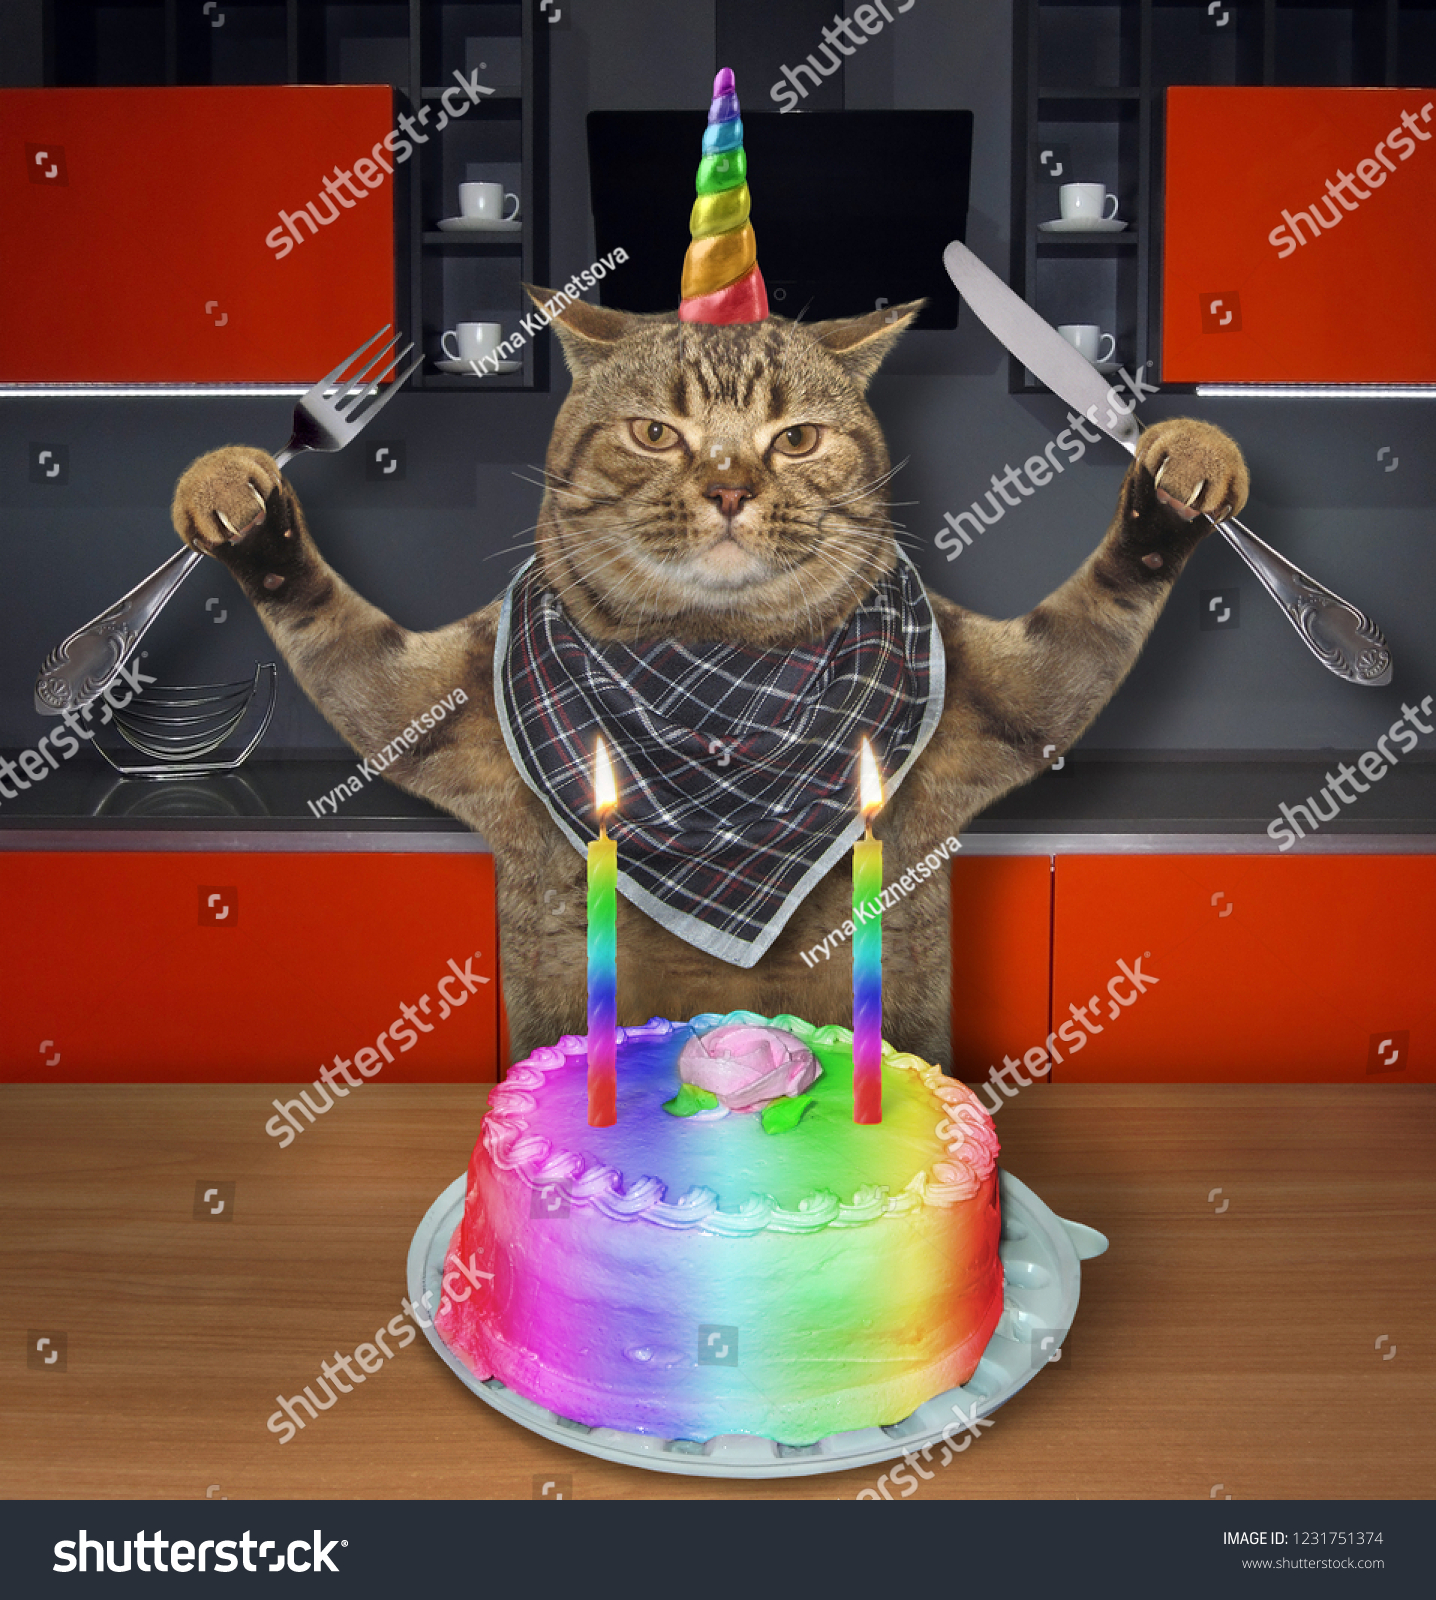 The Cat Unicorn With A Knife And Fork Is Going To Eat Birthday Cake